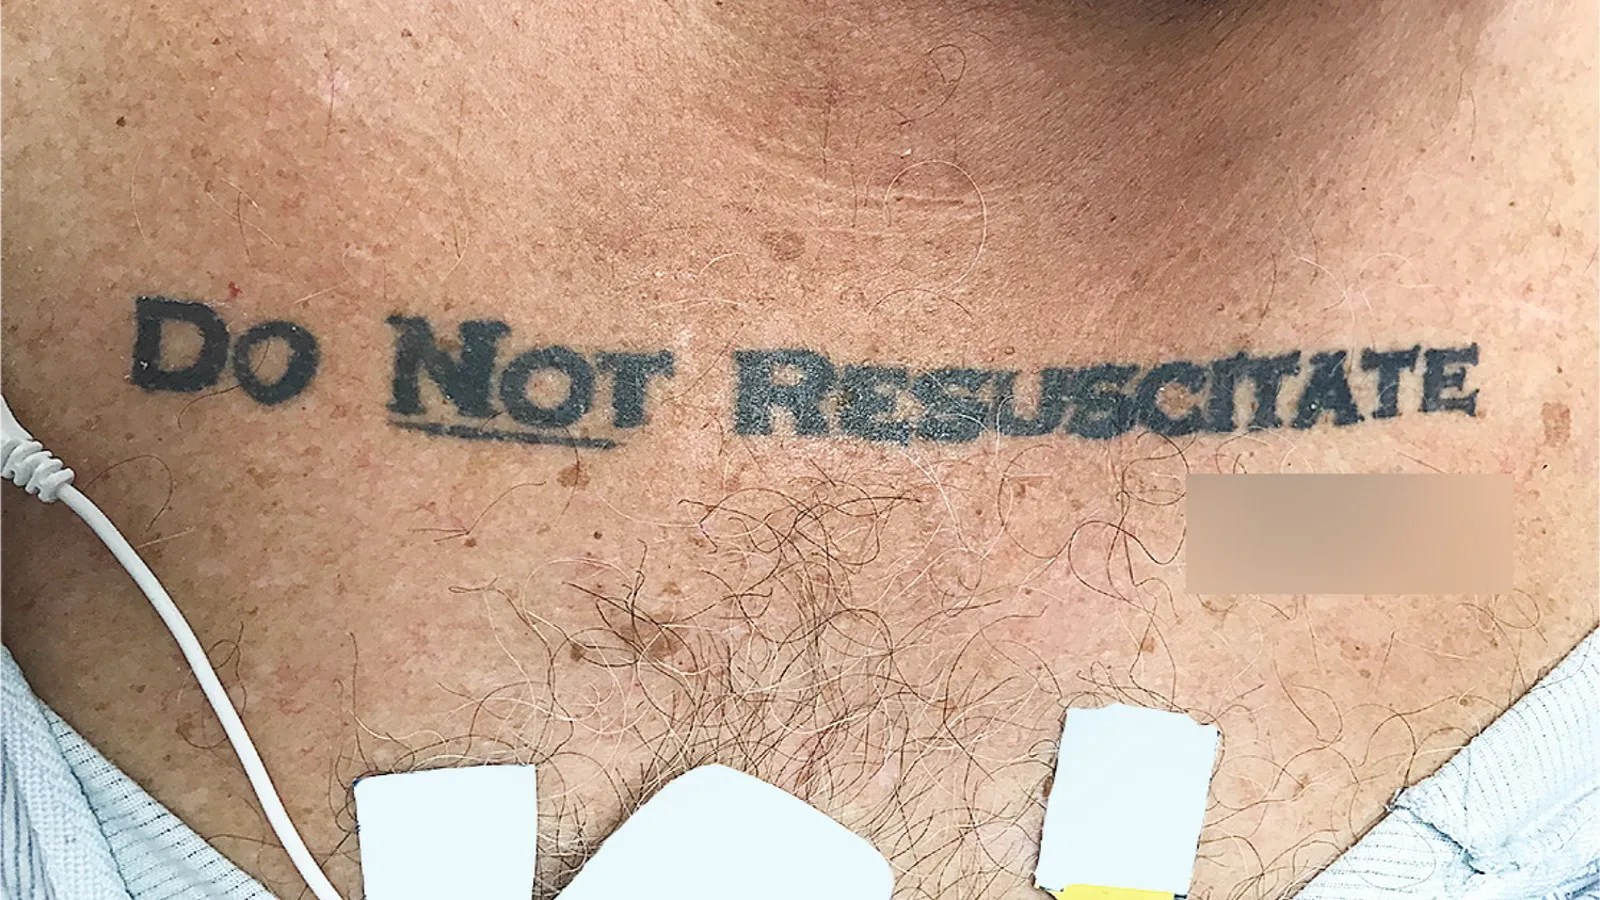 Calligraphy Tattoo Artist Toronto Unconscious Patient With Do Not Resuscitate Tattoo Causes